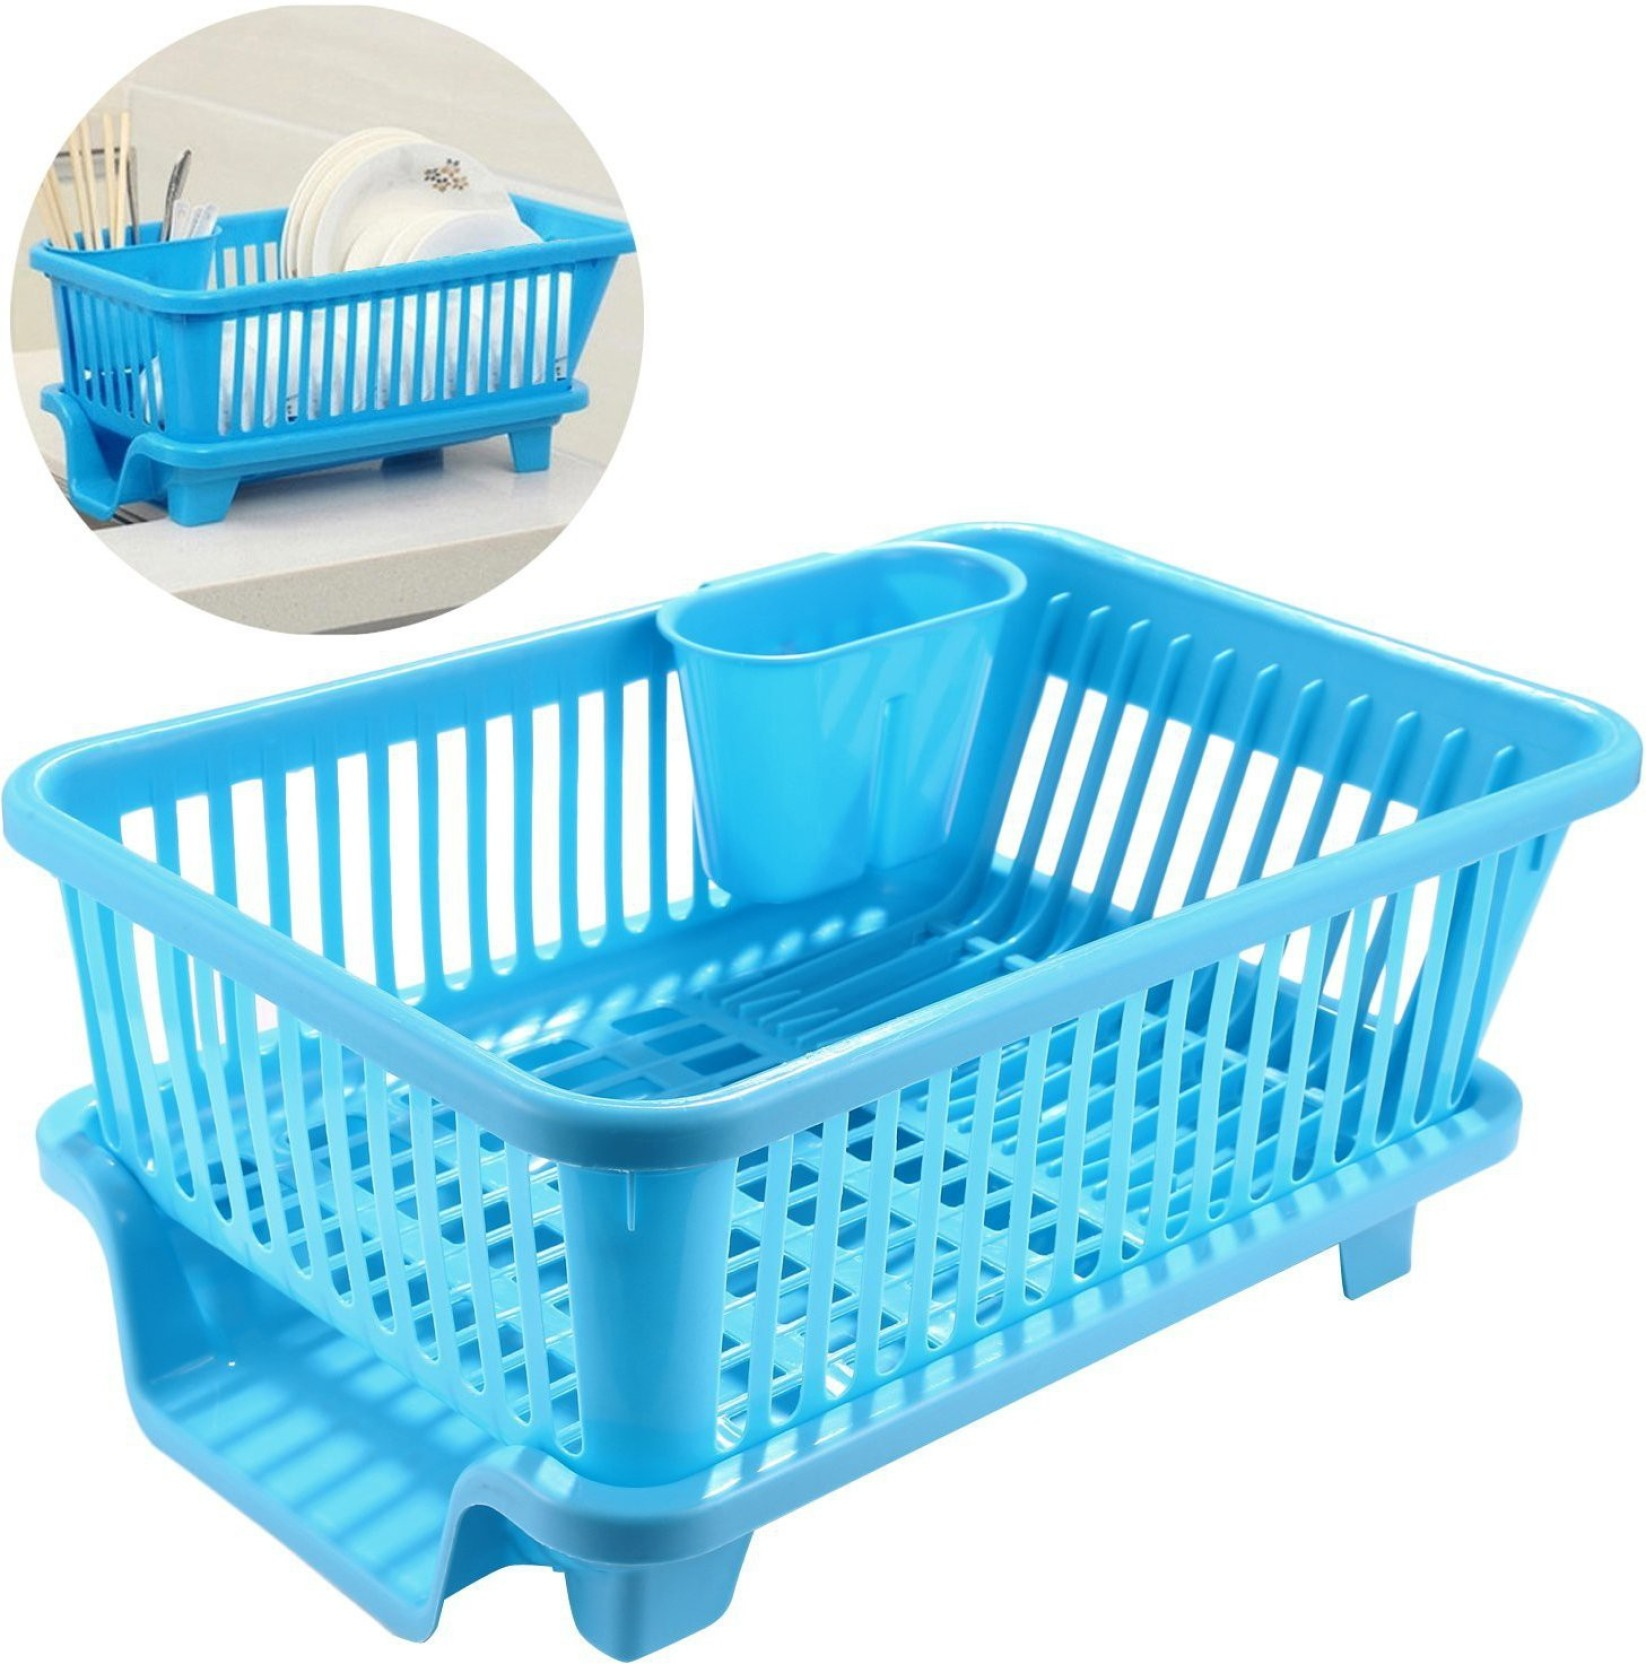 House of Quirk Sink Dish Drainer Drying Rack Washing Holder Basket ...